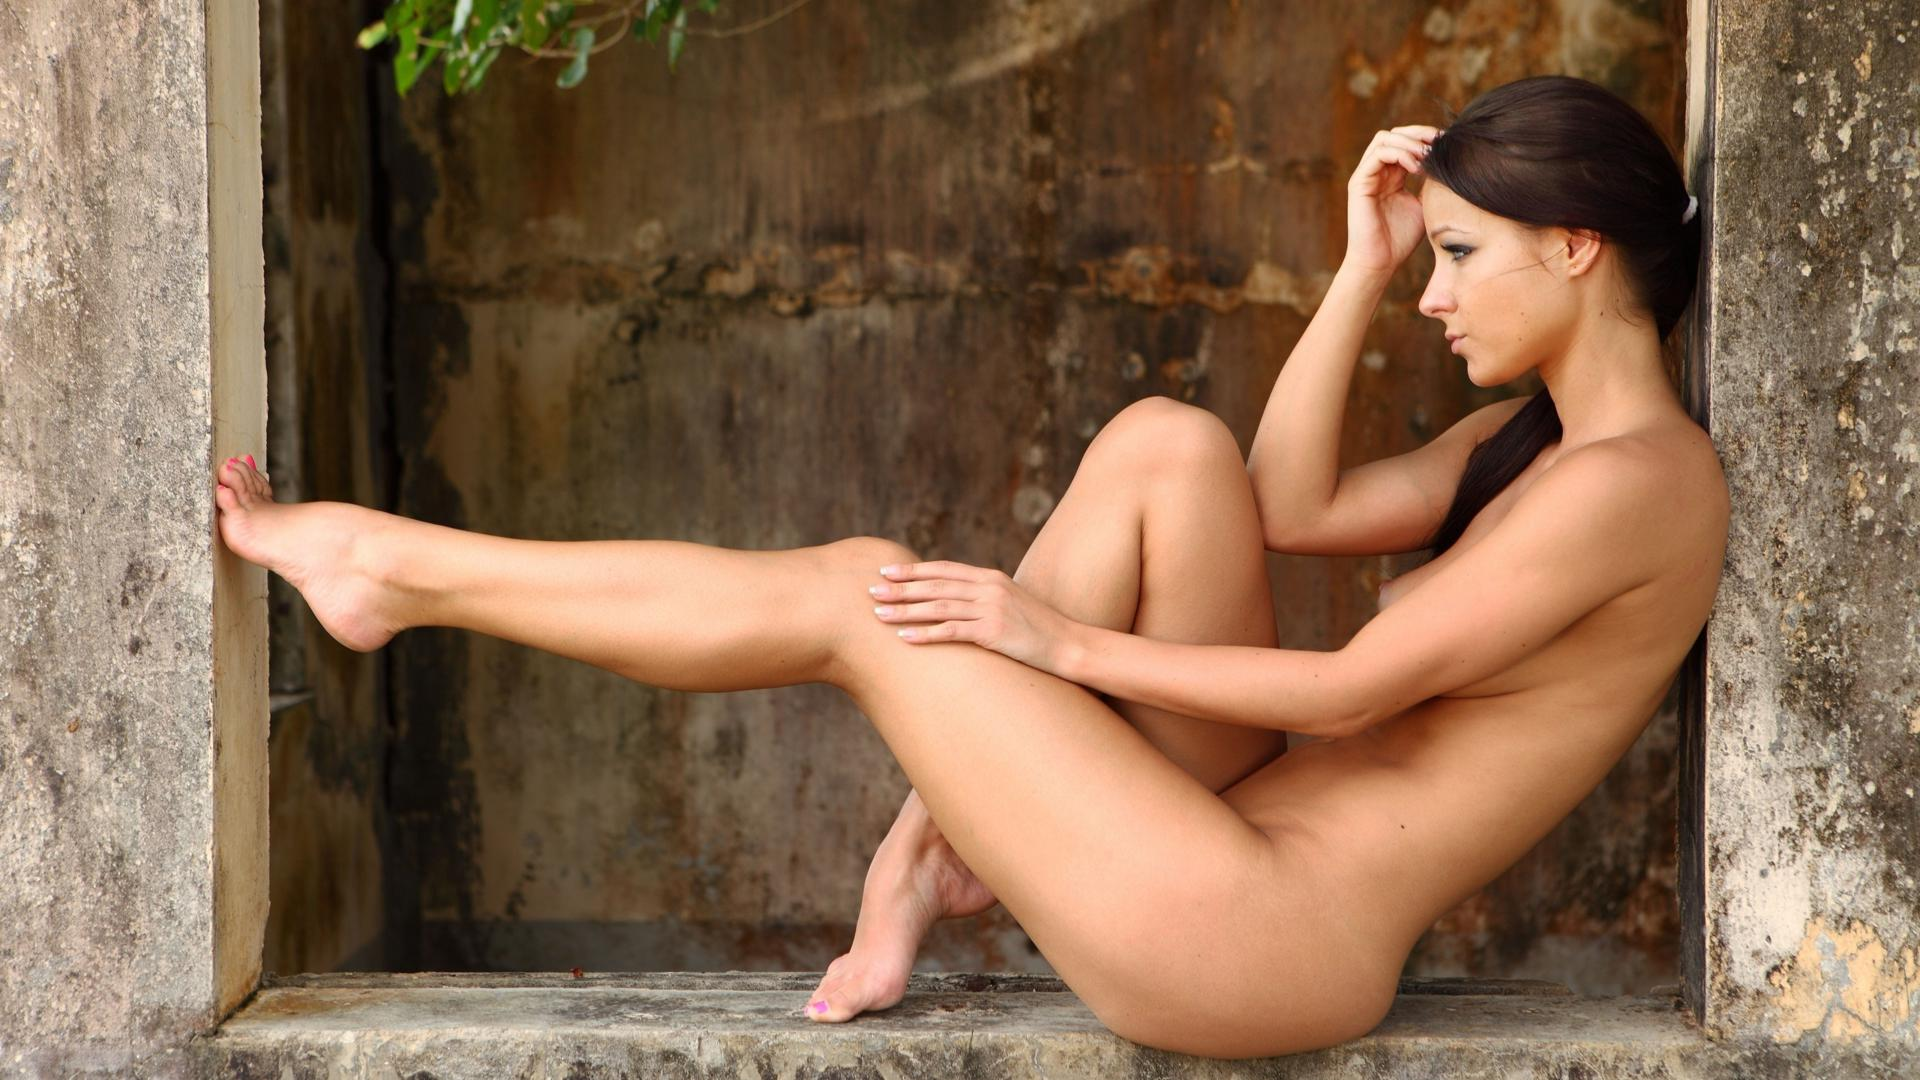 Hot Nude Beauty download photo 1920x1080, melissa mendiny, sexy, girl, hot